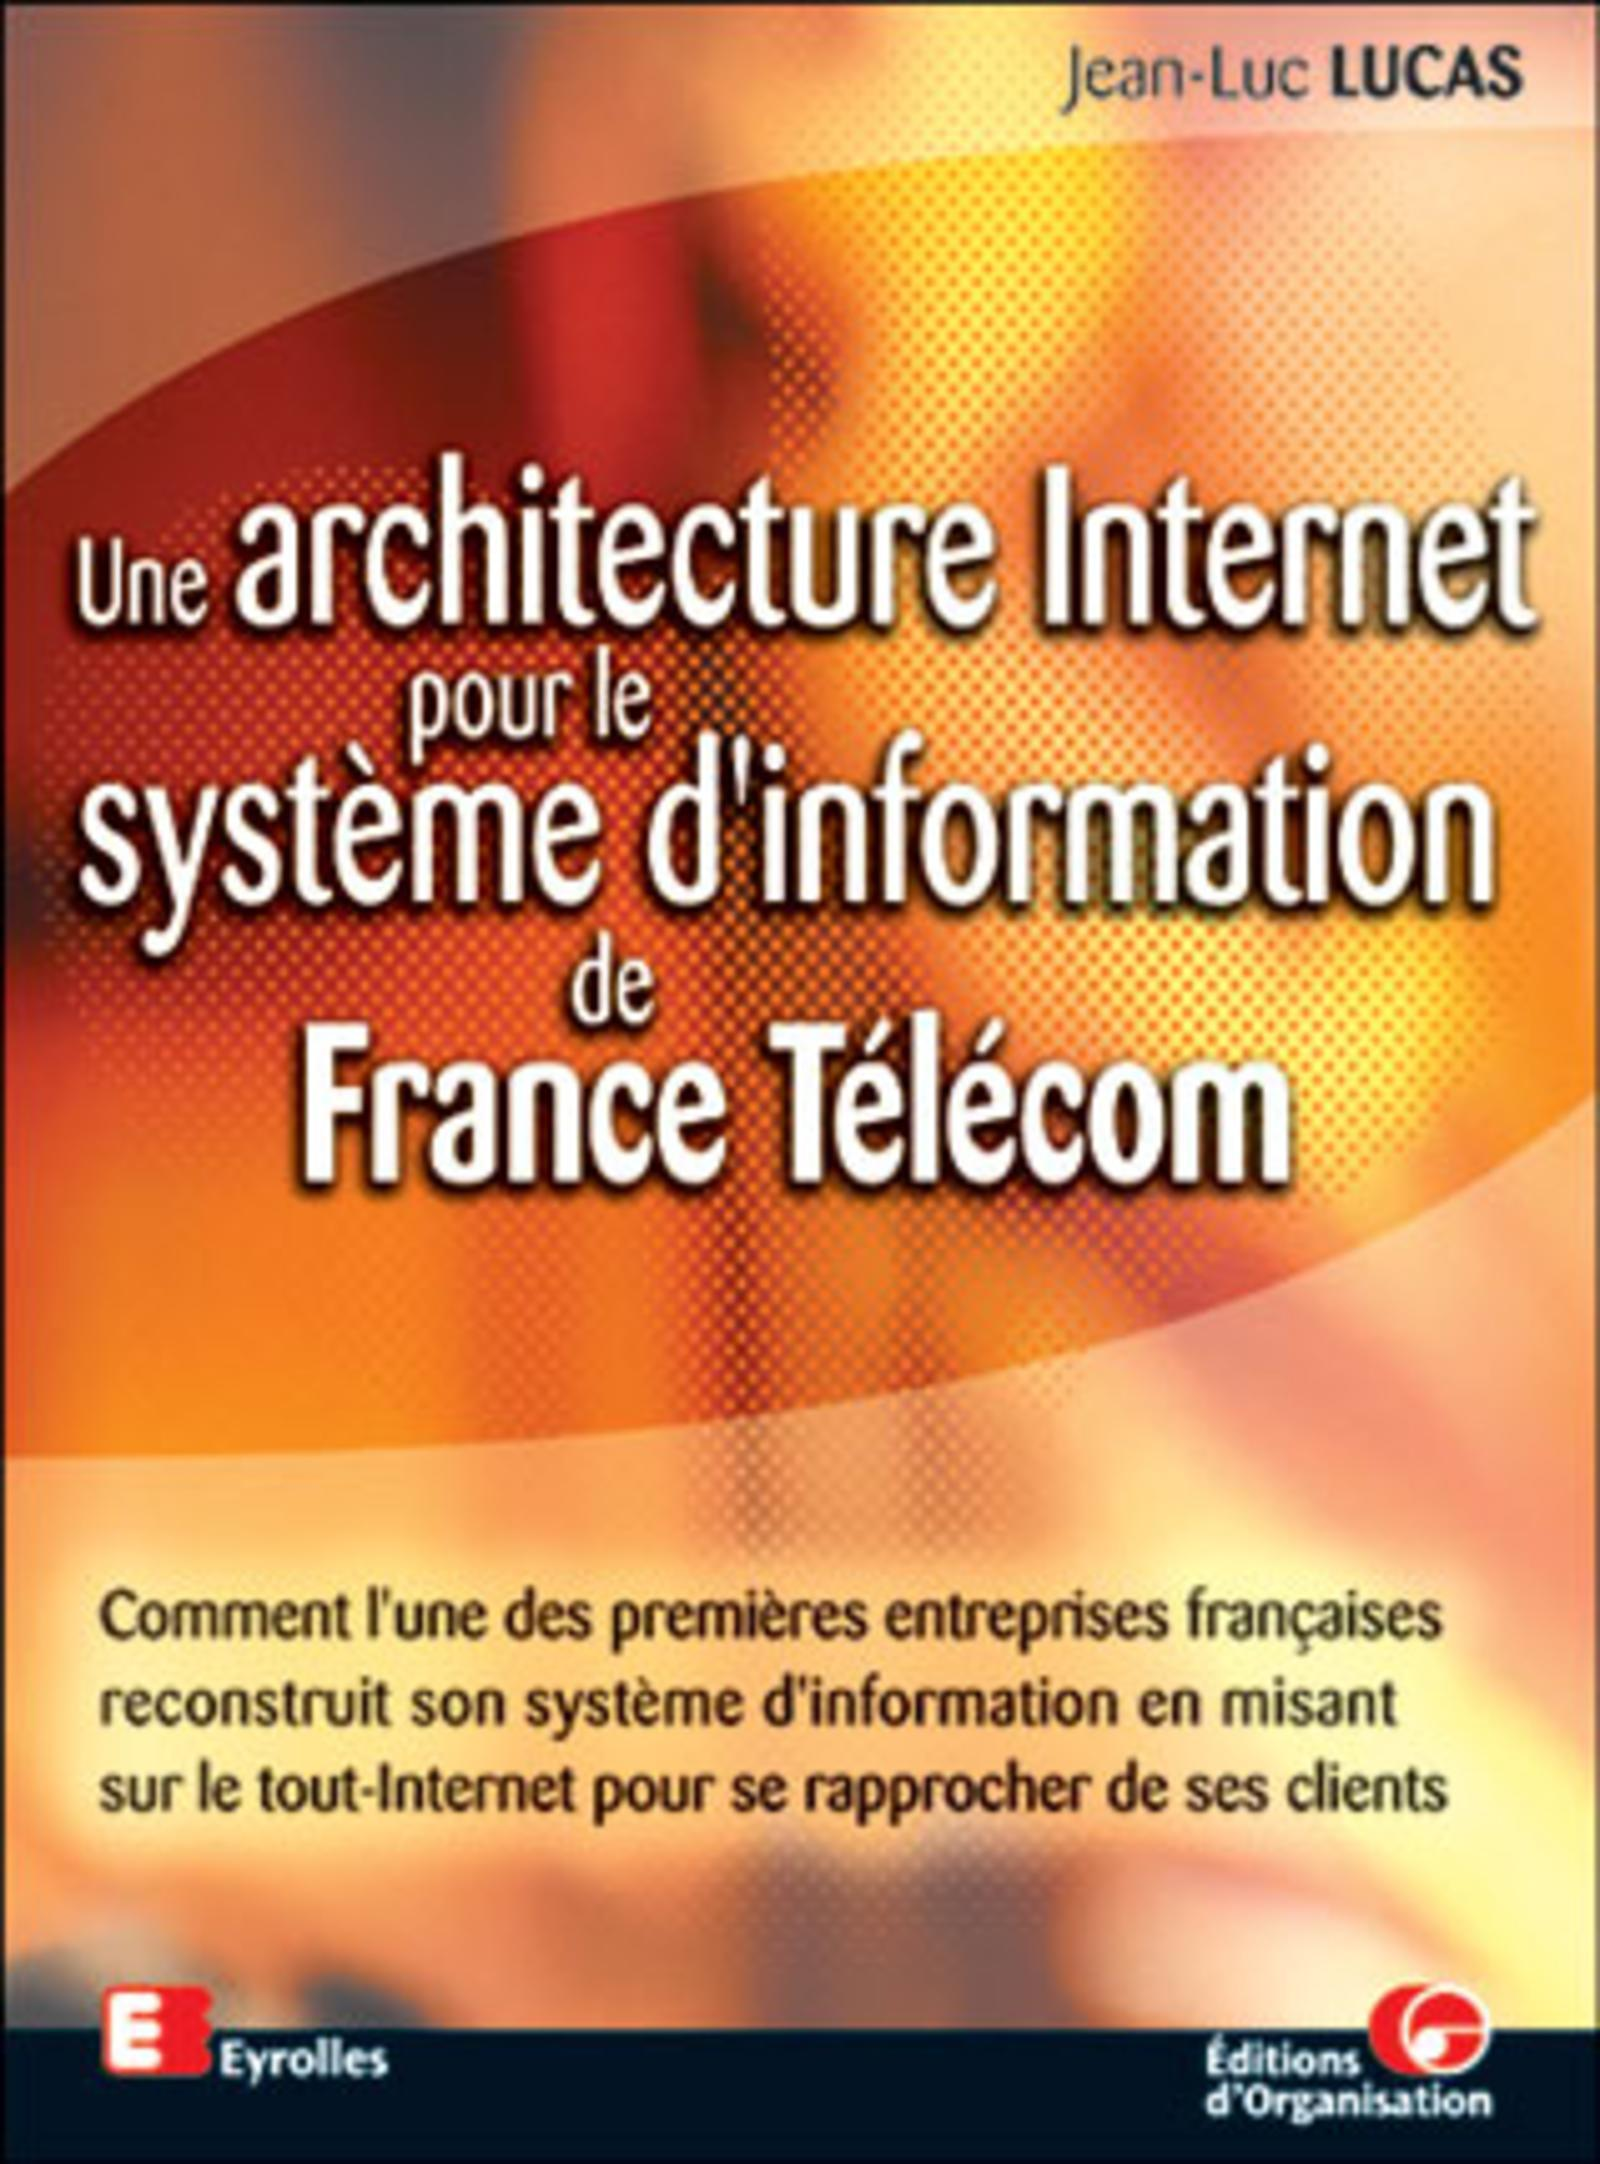 ARCHITECTURE INTERNET POUR SYSTEME INFORMATION DE FRANCE TELECOM